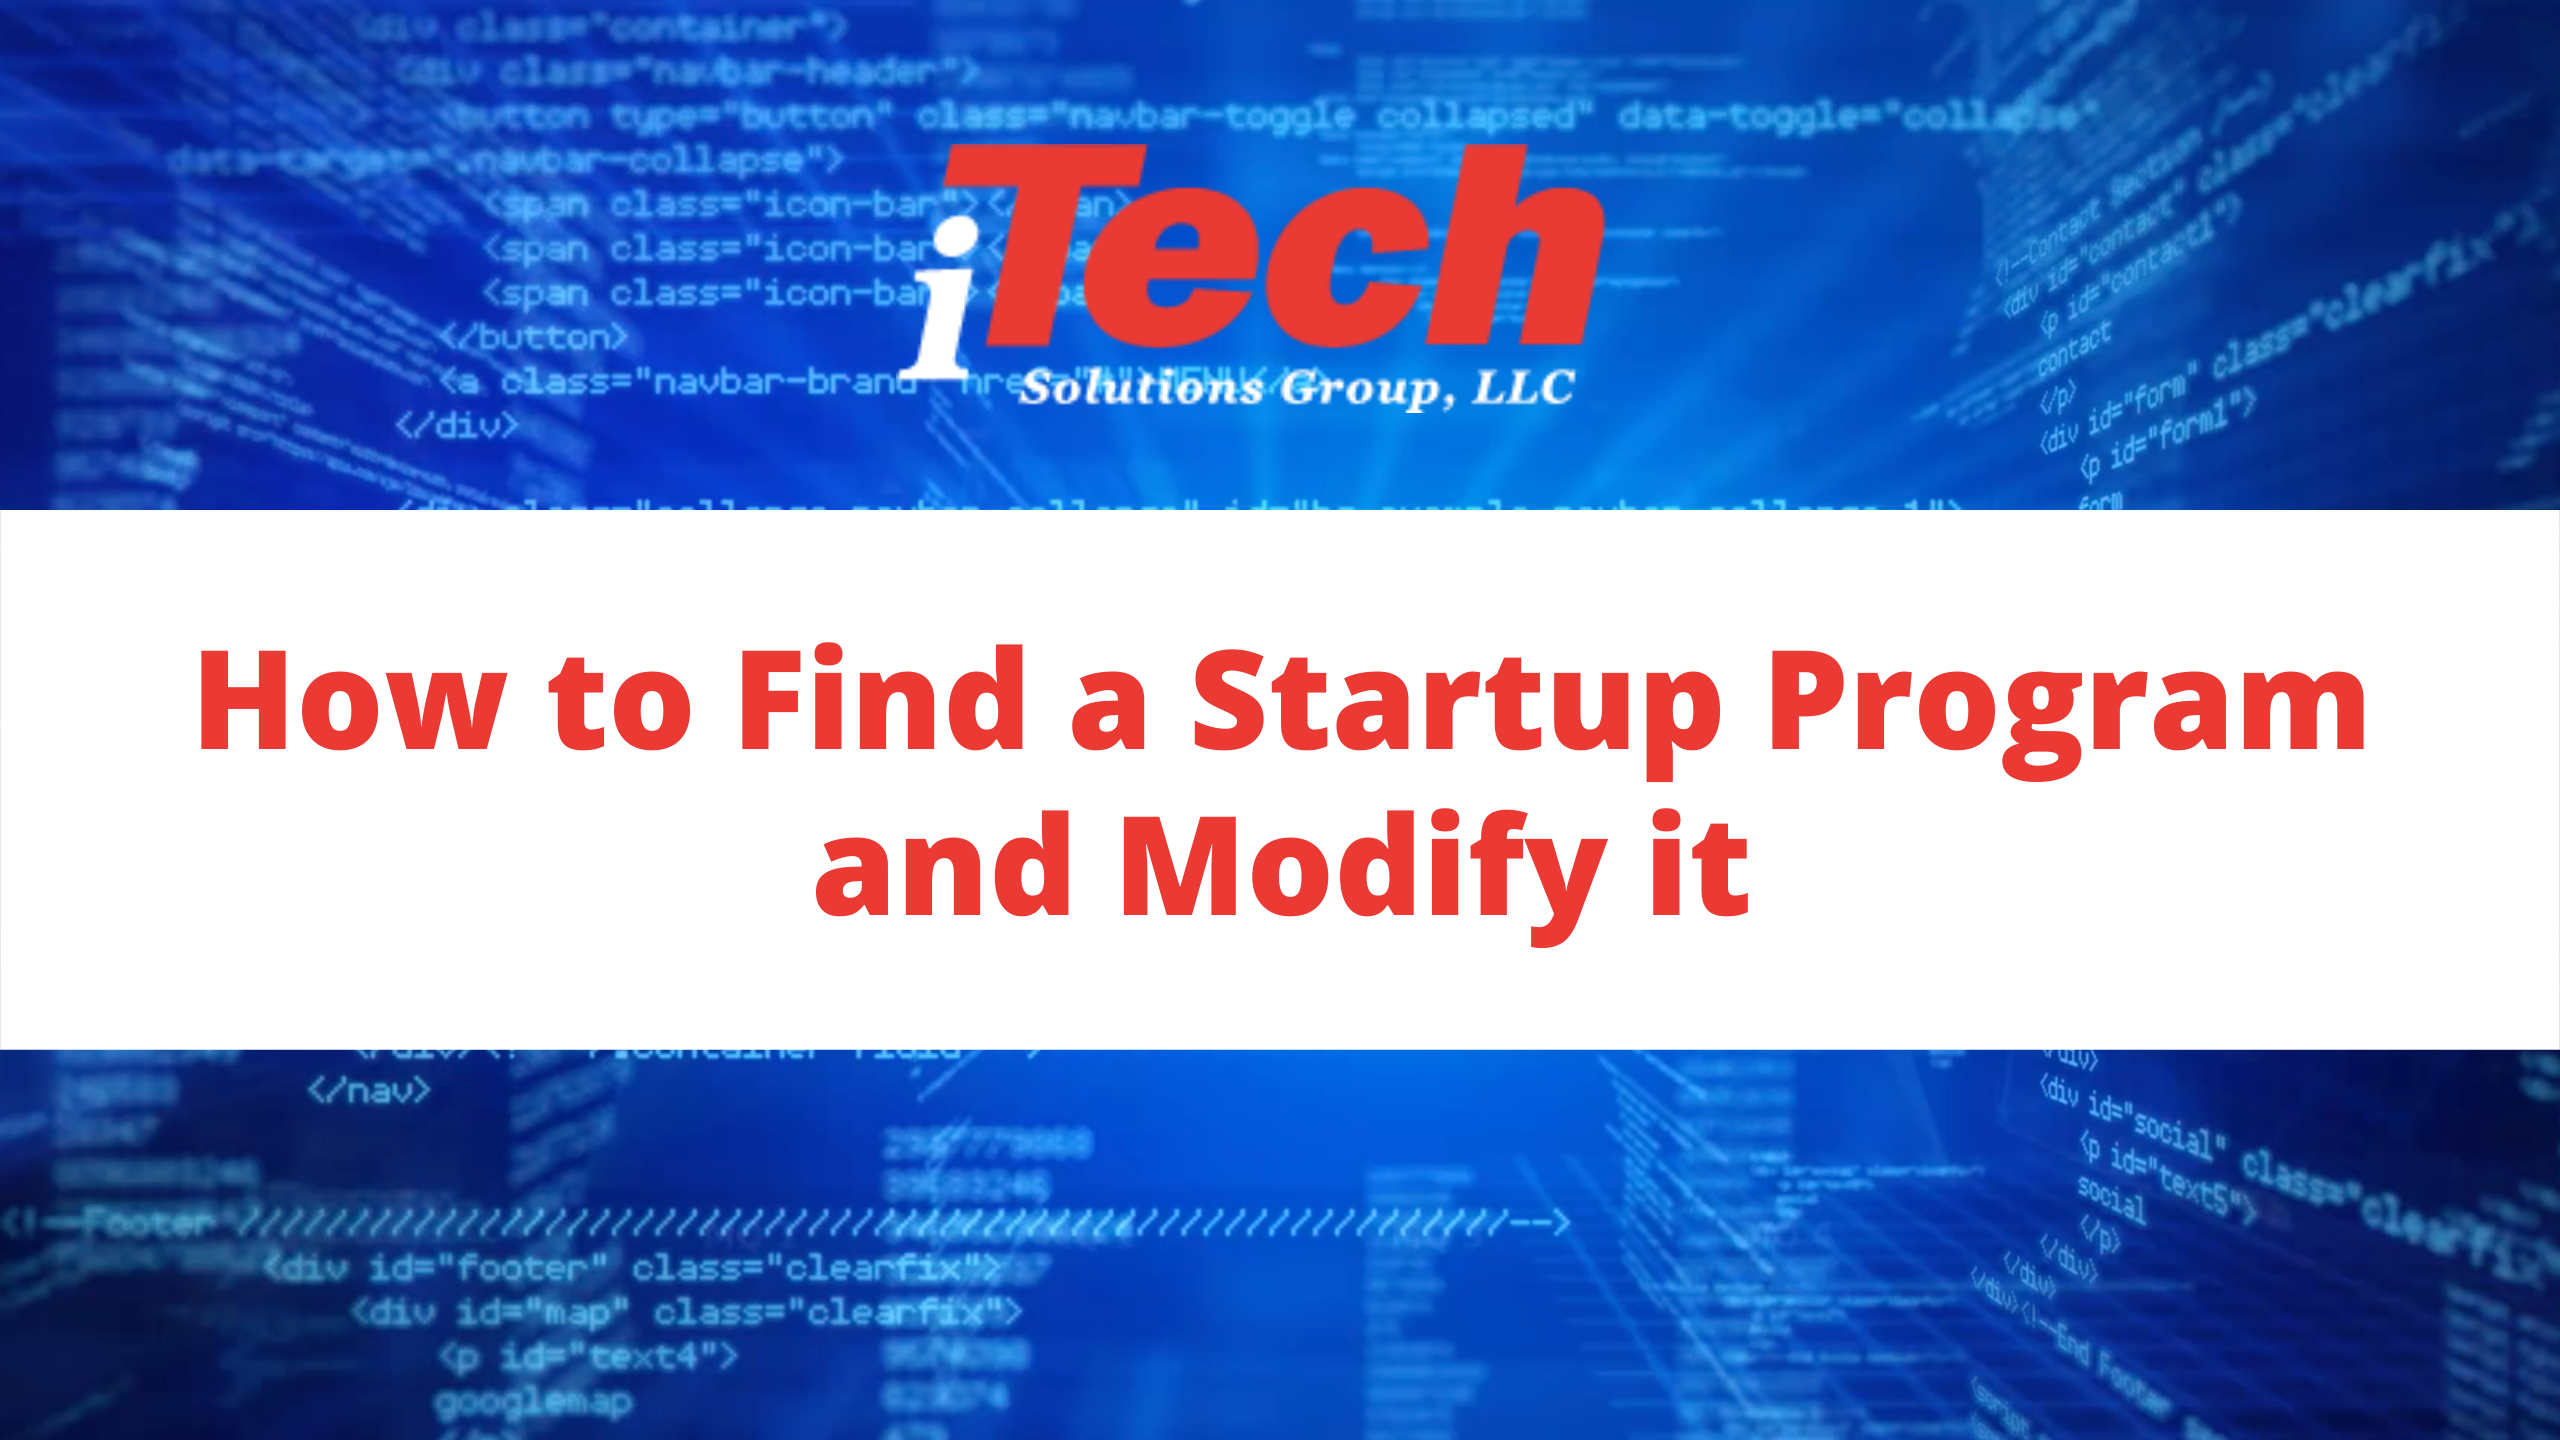 How to Find a Startup Program and Modify it (1)